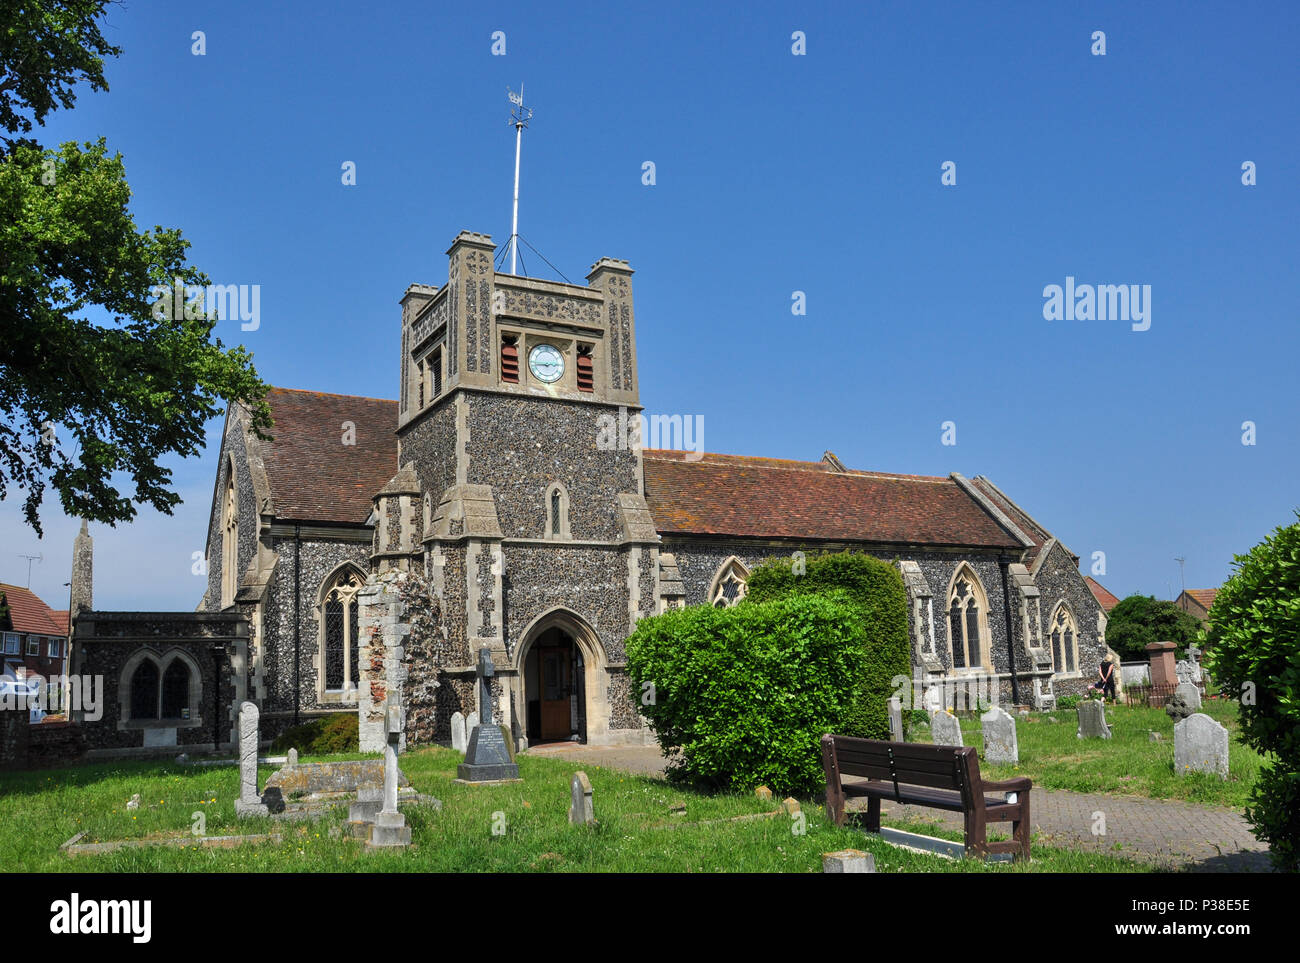 St Mary's Church, Walton, (between Felixstowe and Trimley), Suffolk, England, UK - Stock Image